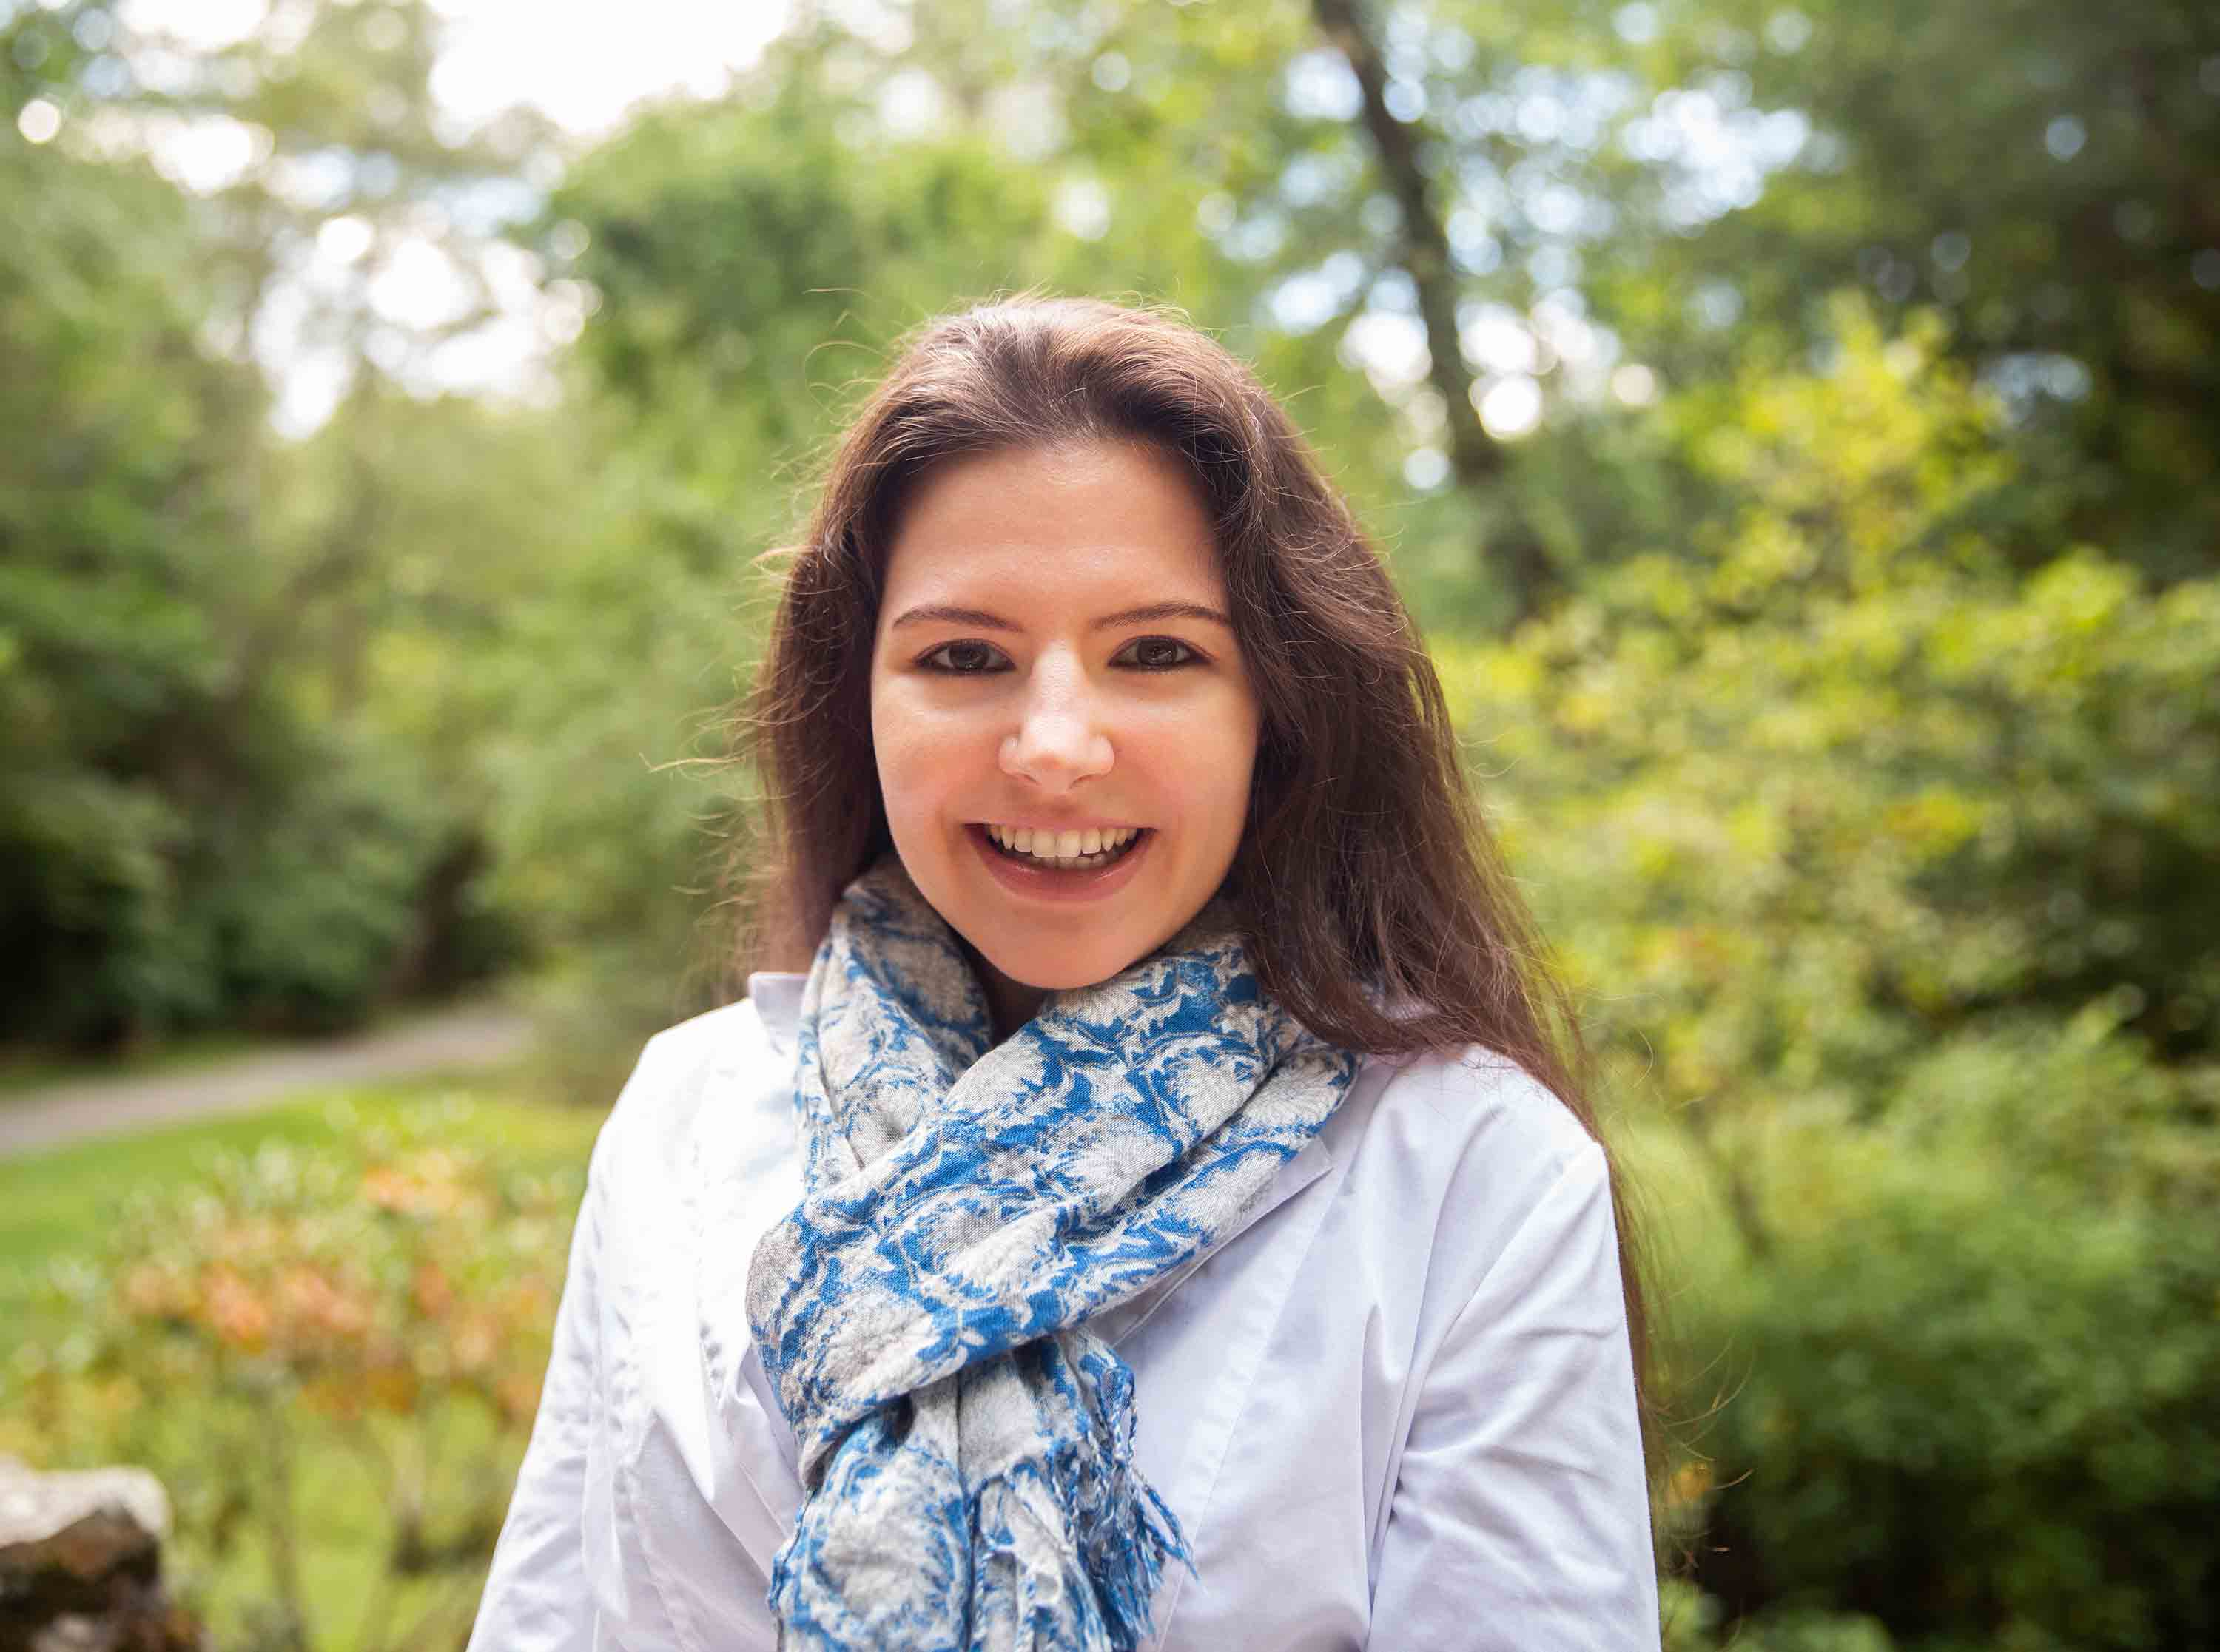 Meet Dr. Bethany Polnar of Elite Dental of Natick